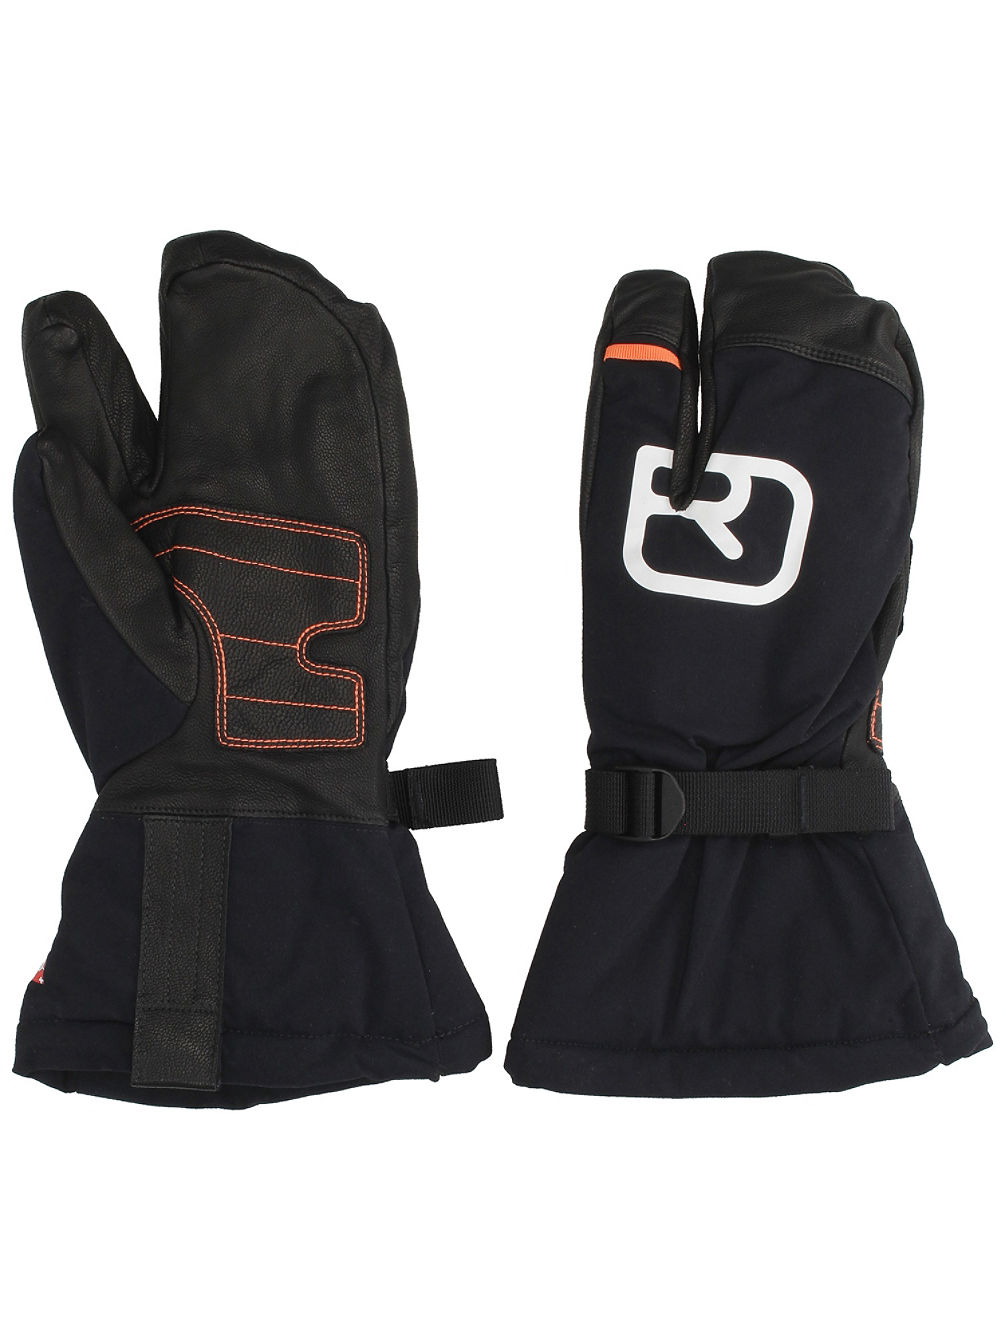 Swisswool Pro Lobster Gloves